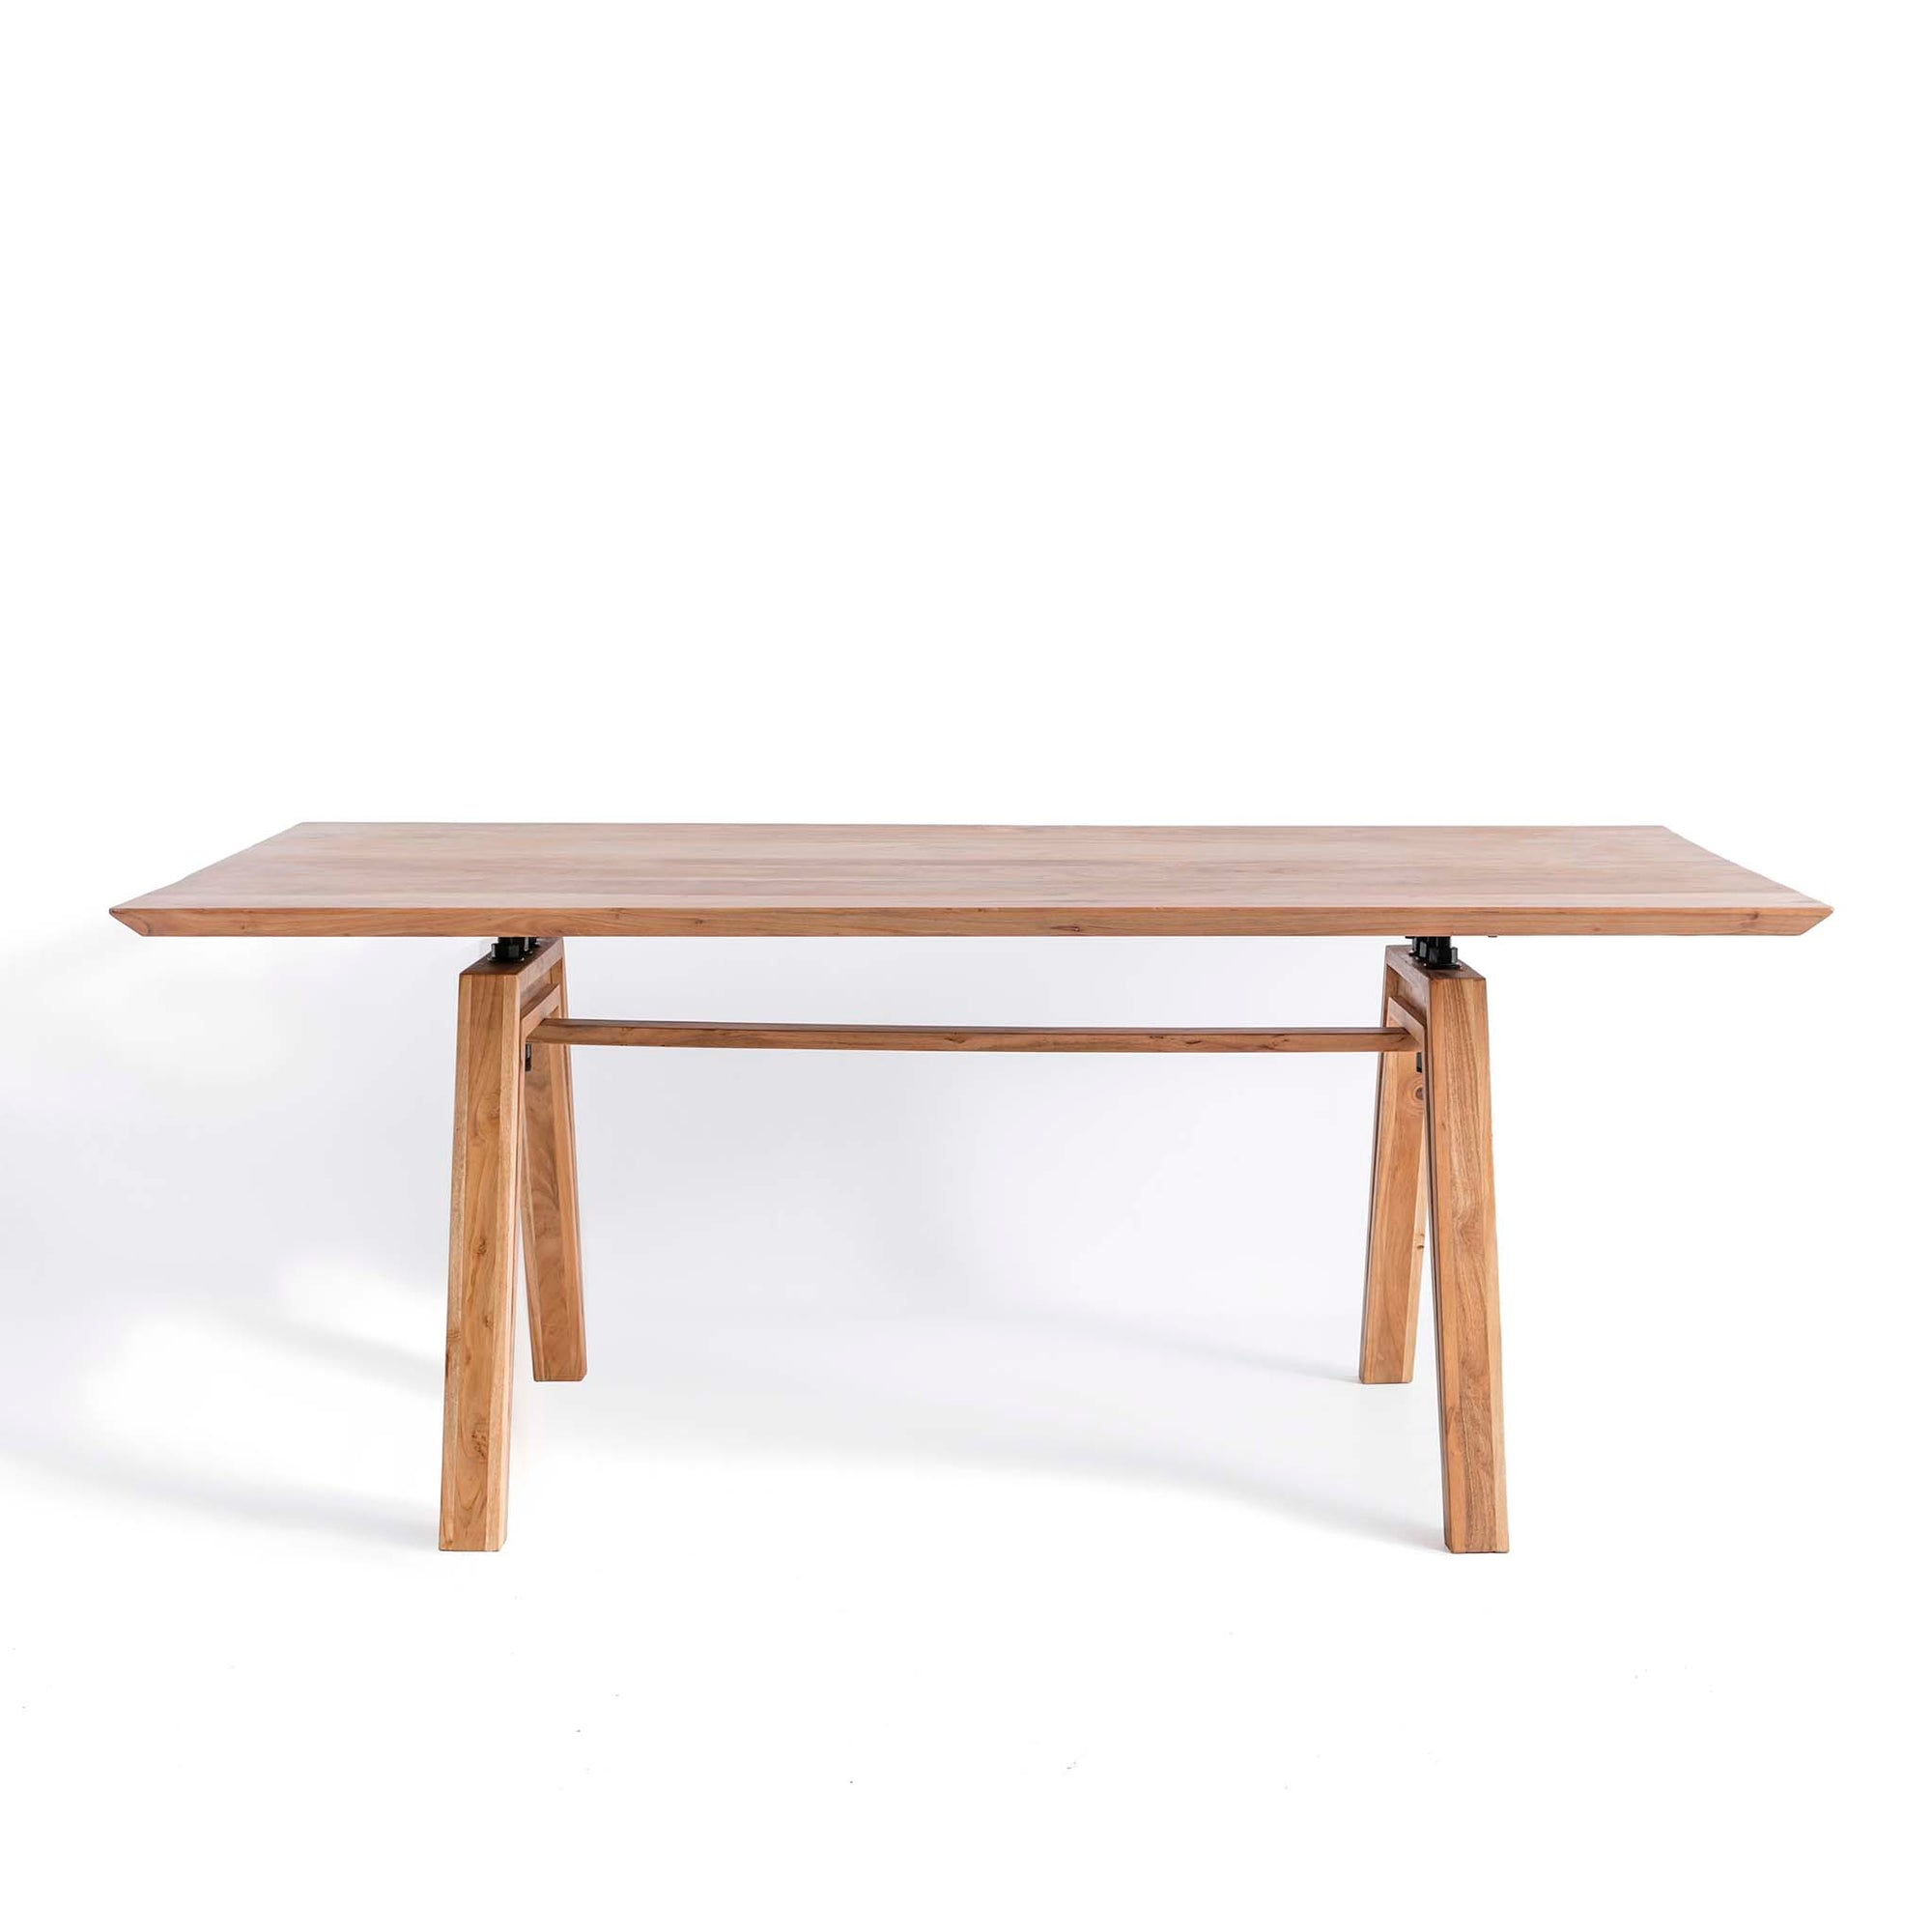 Freya Acacia Dining Table by Roseland Furniture